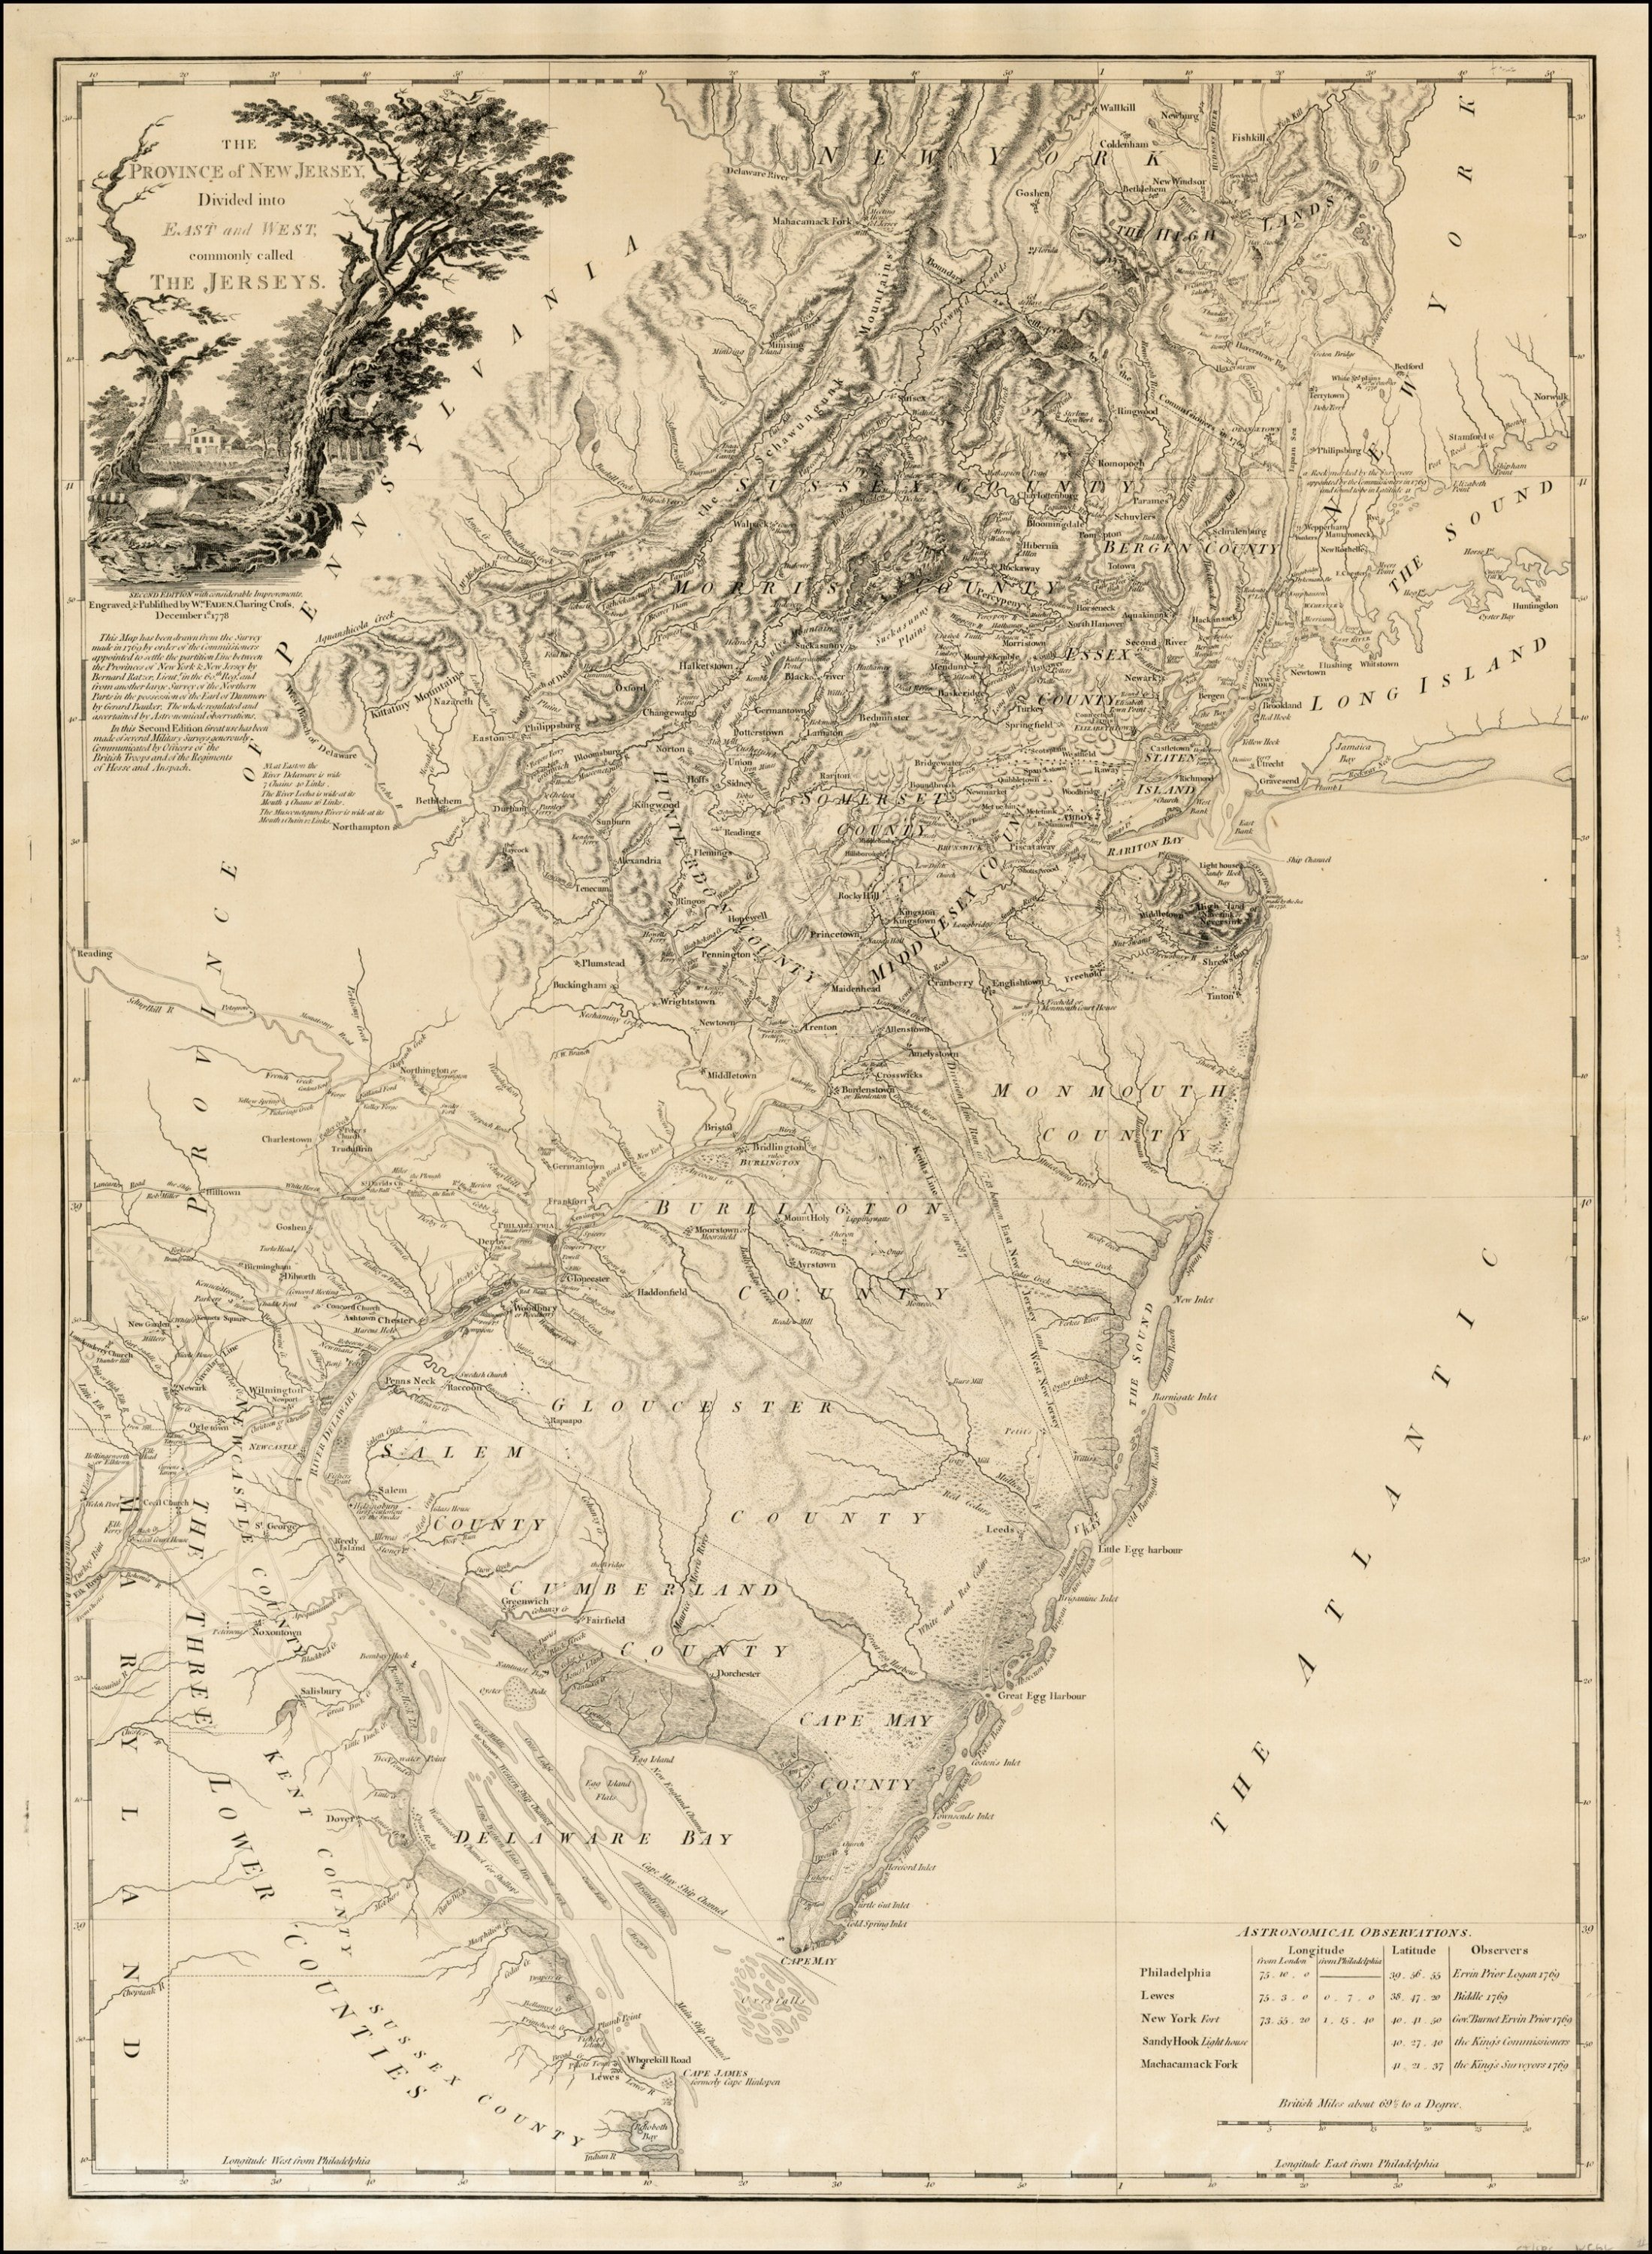 The Finest Thcentury Map Of New Jersey Rare Antique Maps - Maps of new jersey